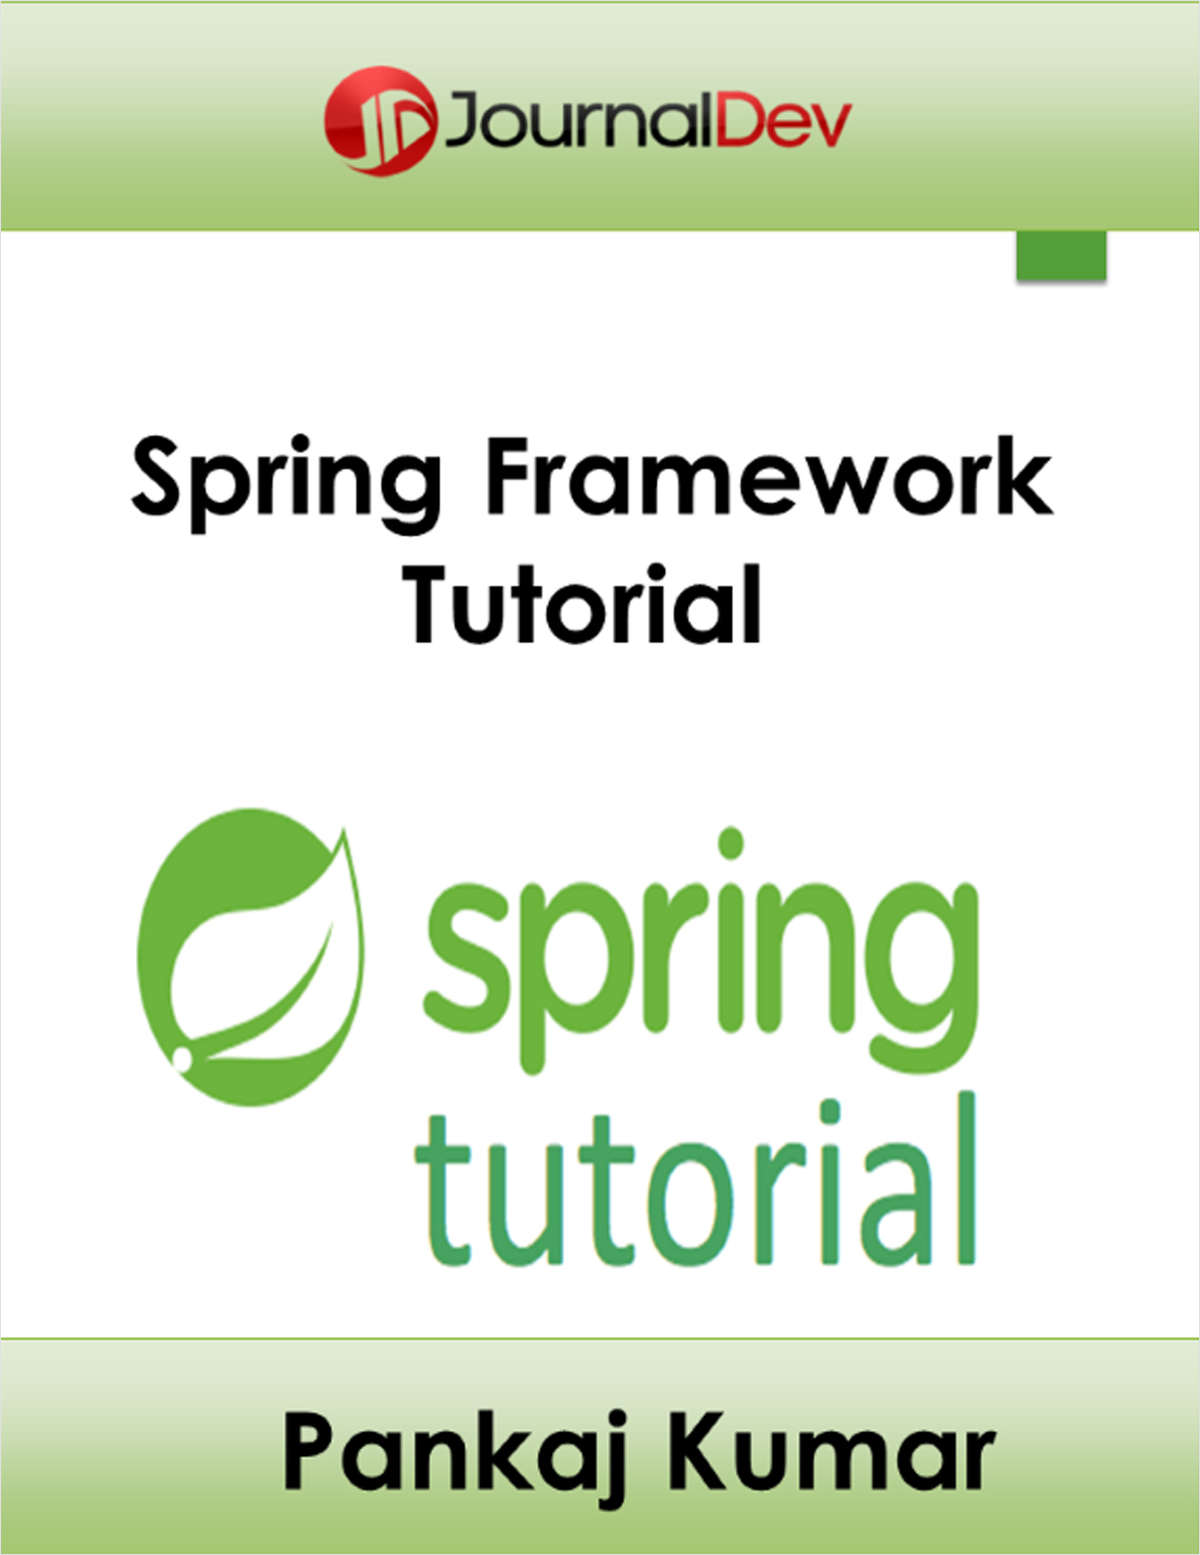 Java ee spring framework tutorial free ebook java ee spring framework tutorial baditri Choice Image